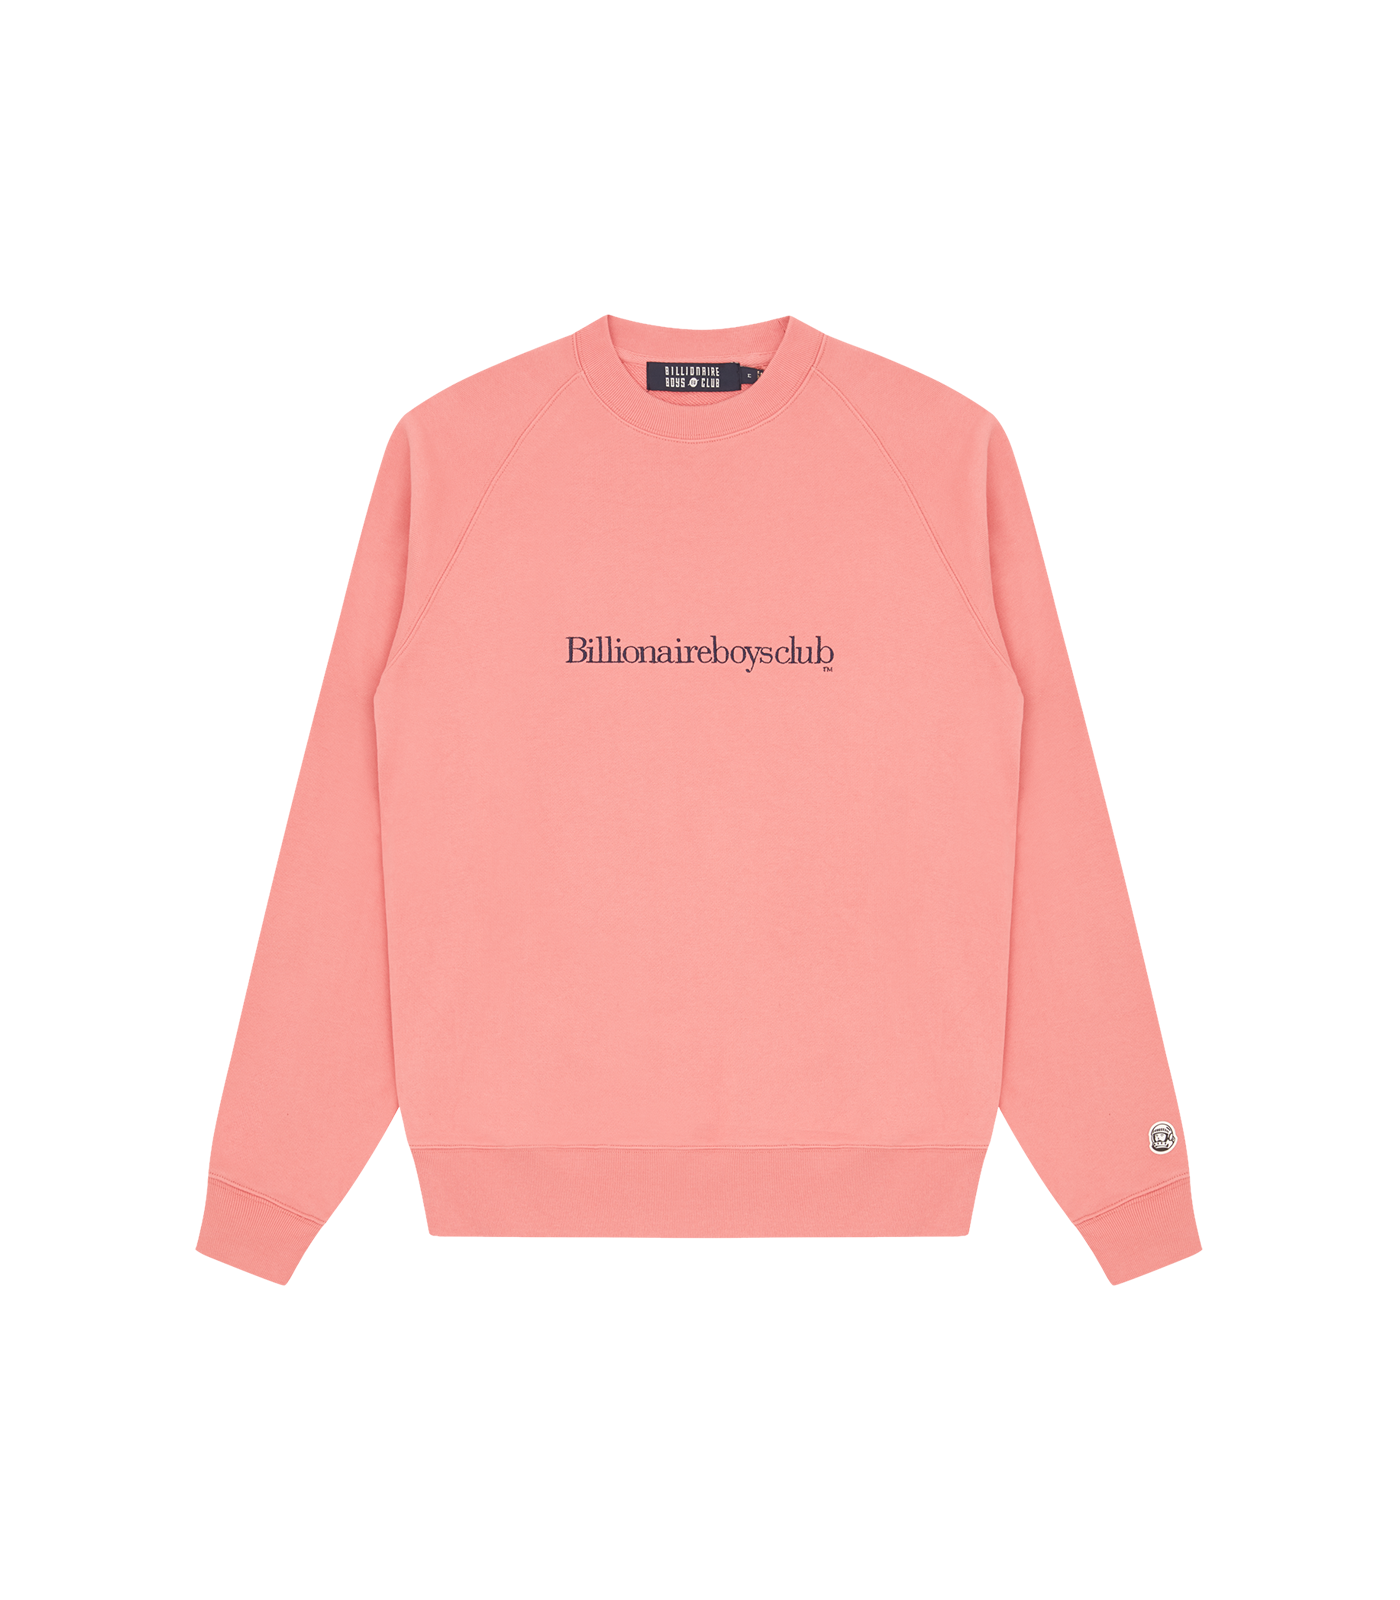 EMBROIDERED LOGO CREWNECK - PINK/NAVY